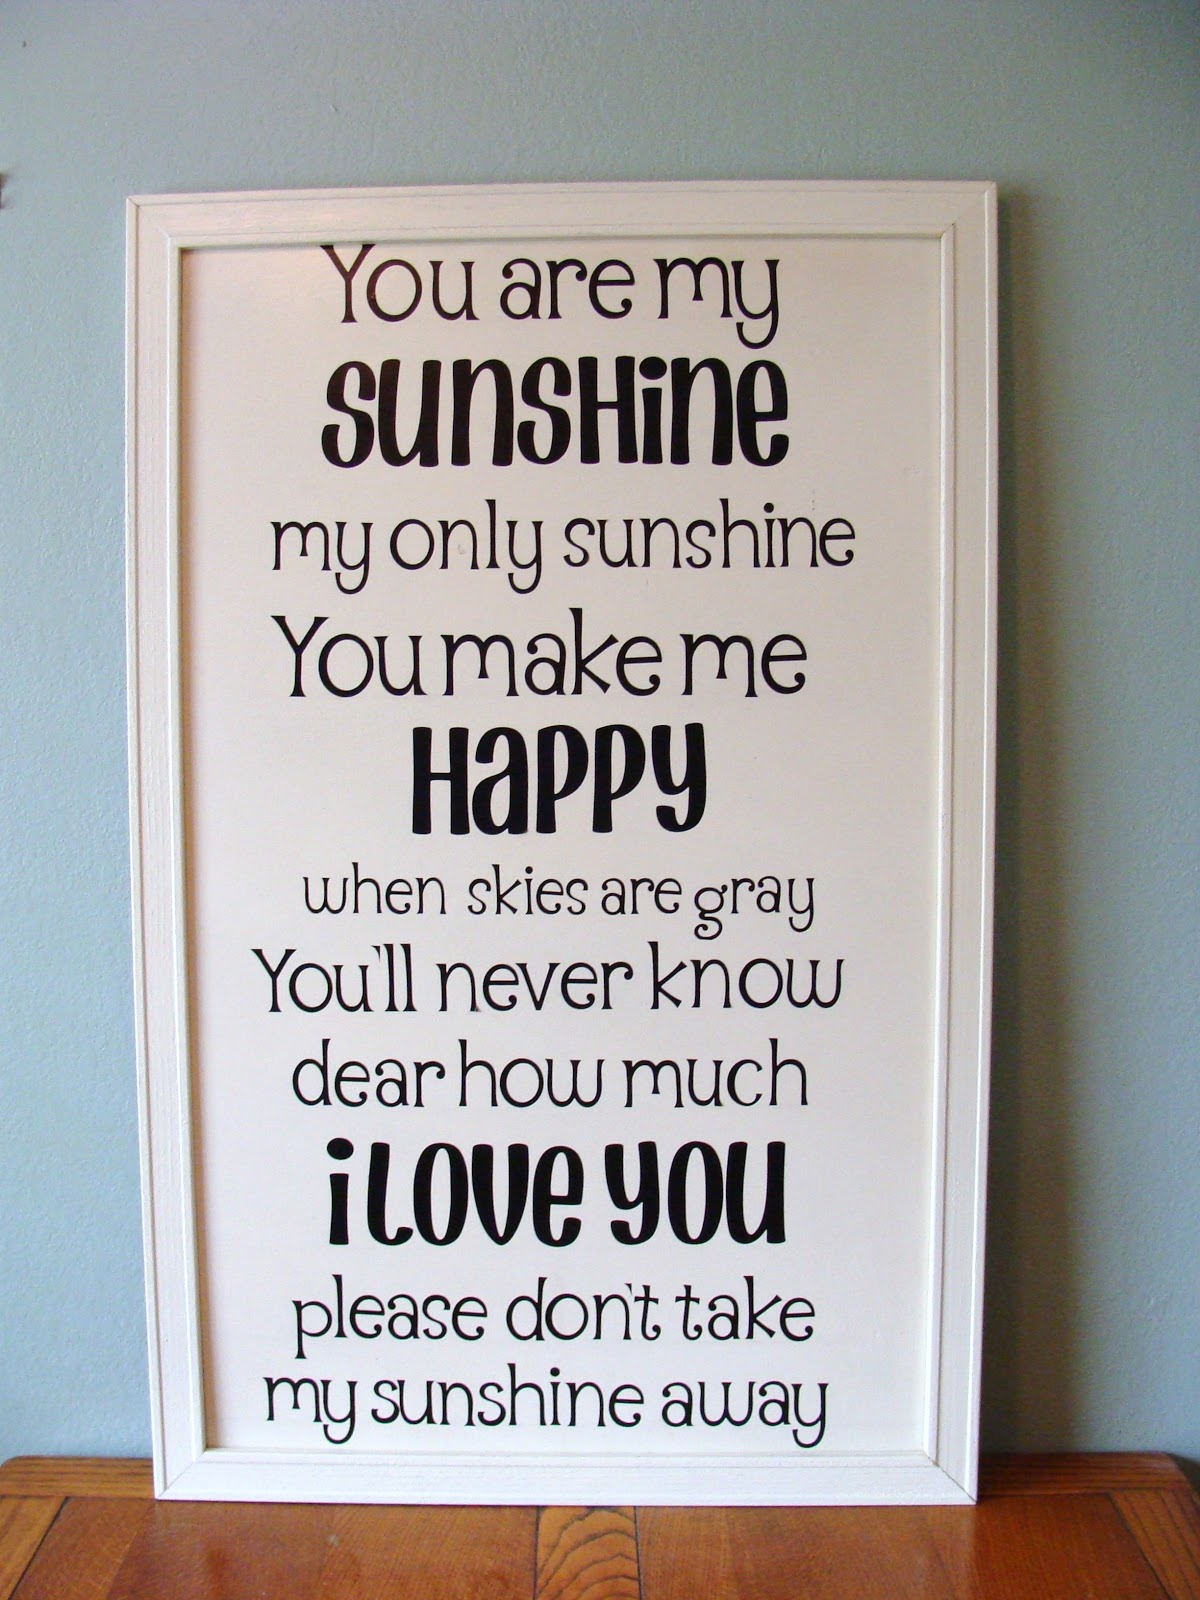 Best Friend Wall Art at Home and Interior Design Ideas